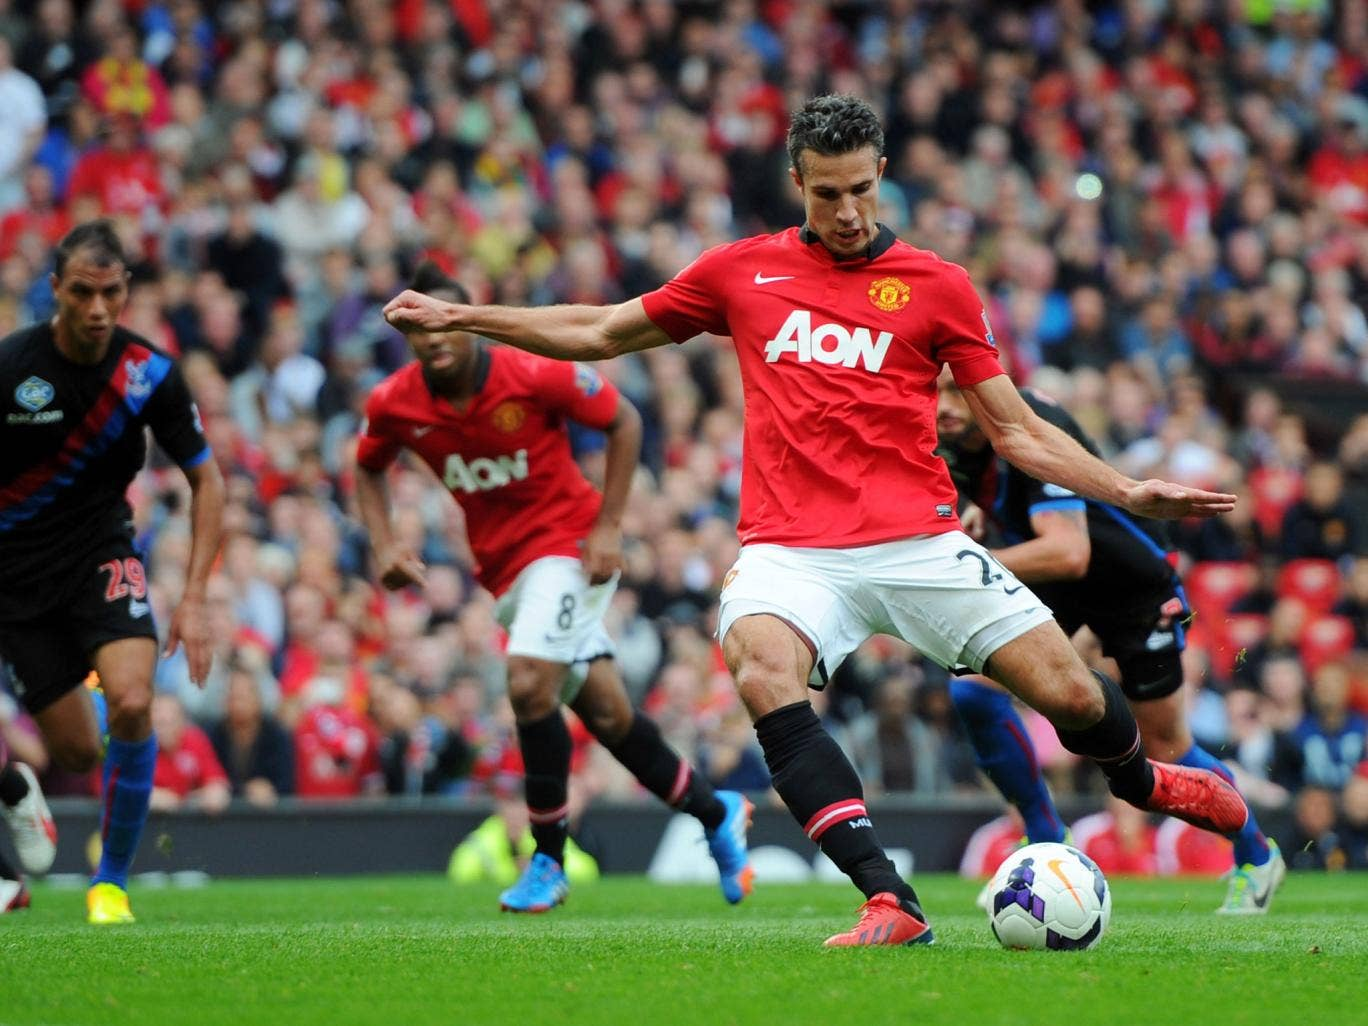 Robin van Persie scores from the penalty spot against Crystal Palace on Saturday